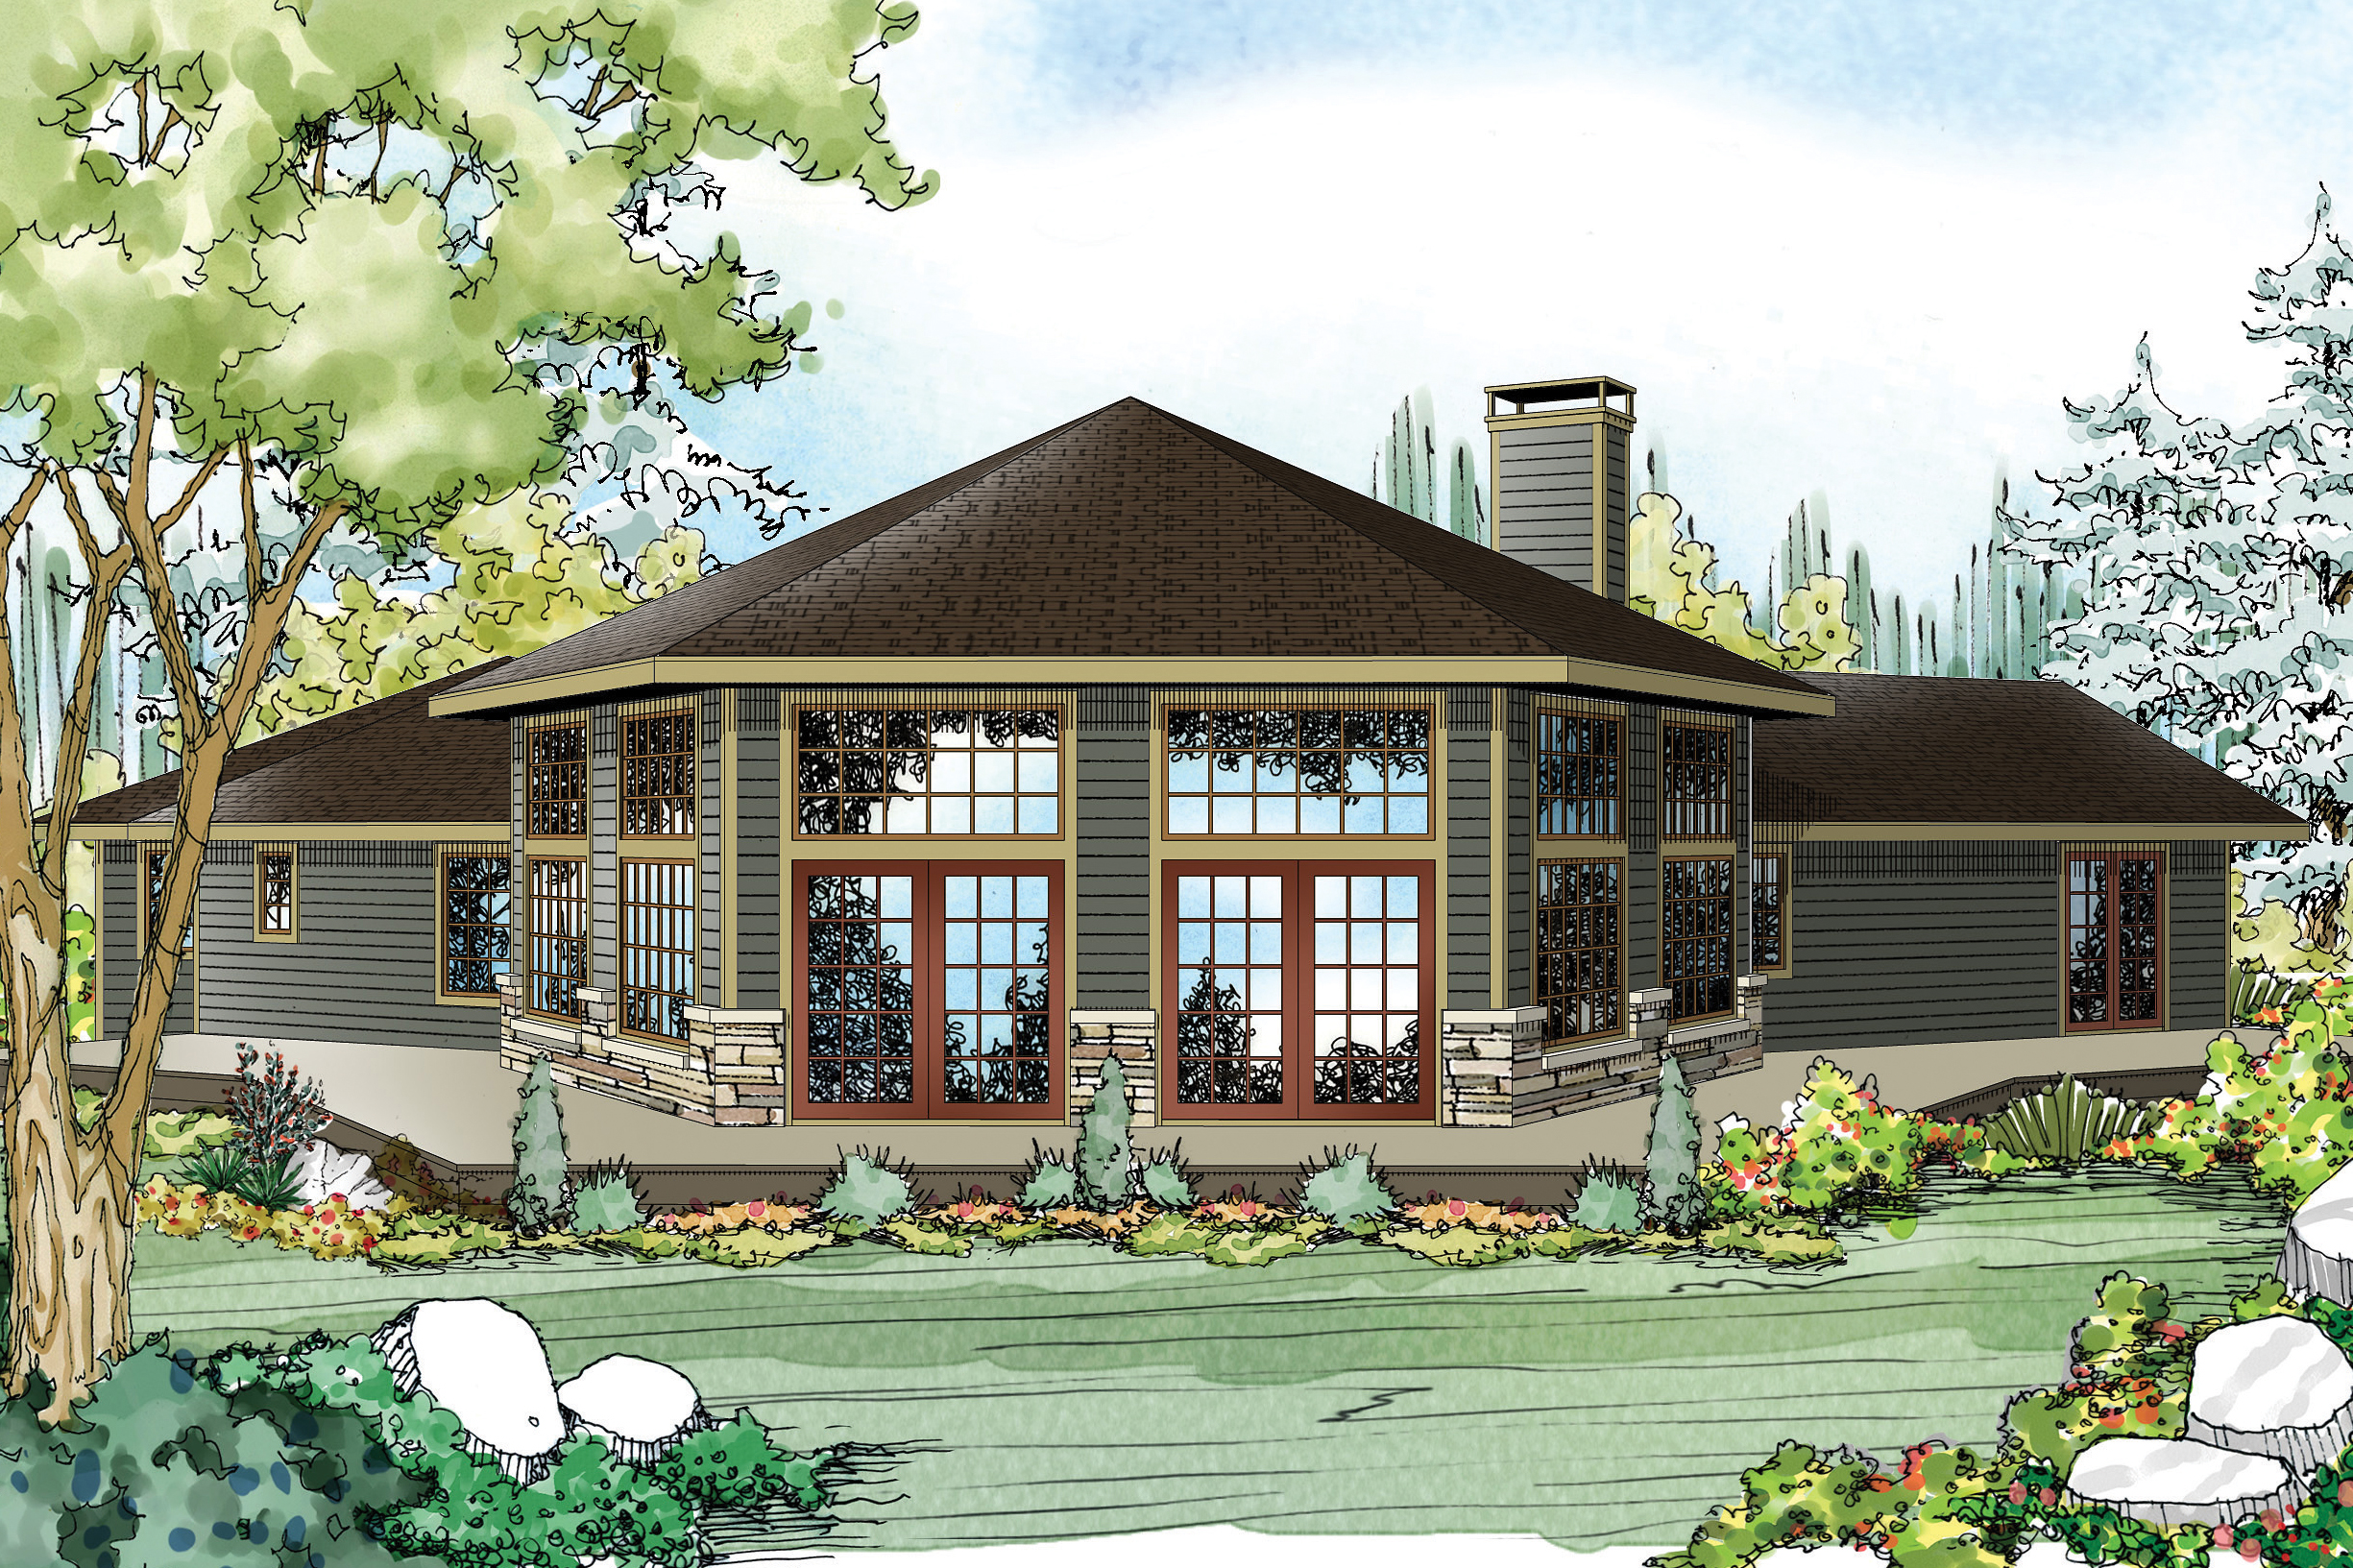 Ranch House Plans - Silvercrest 11-143 - ociated Designs on